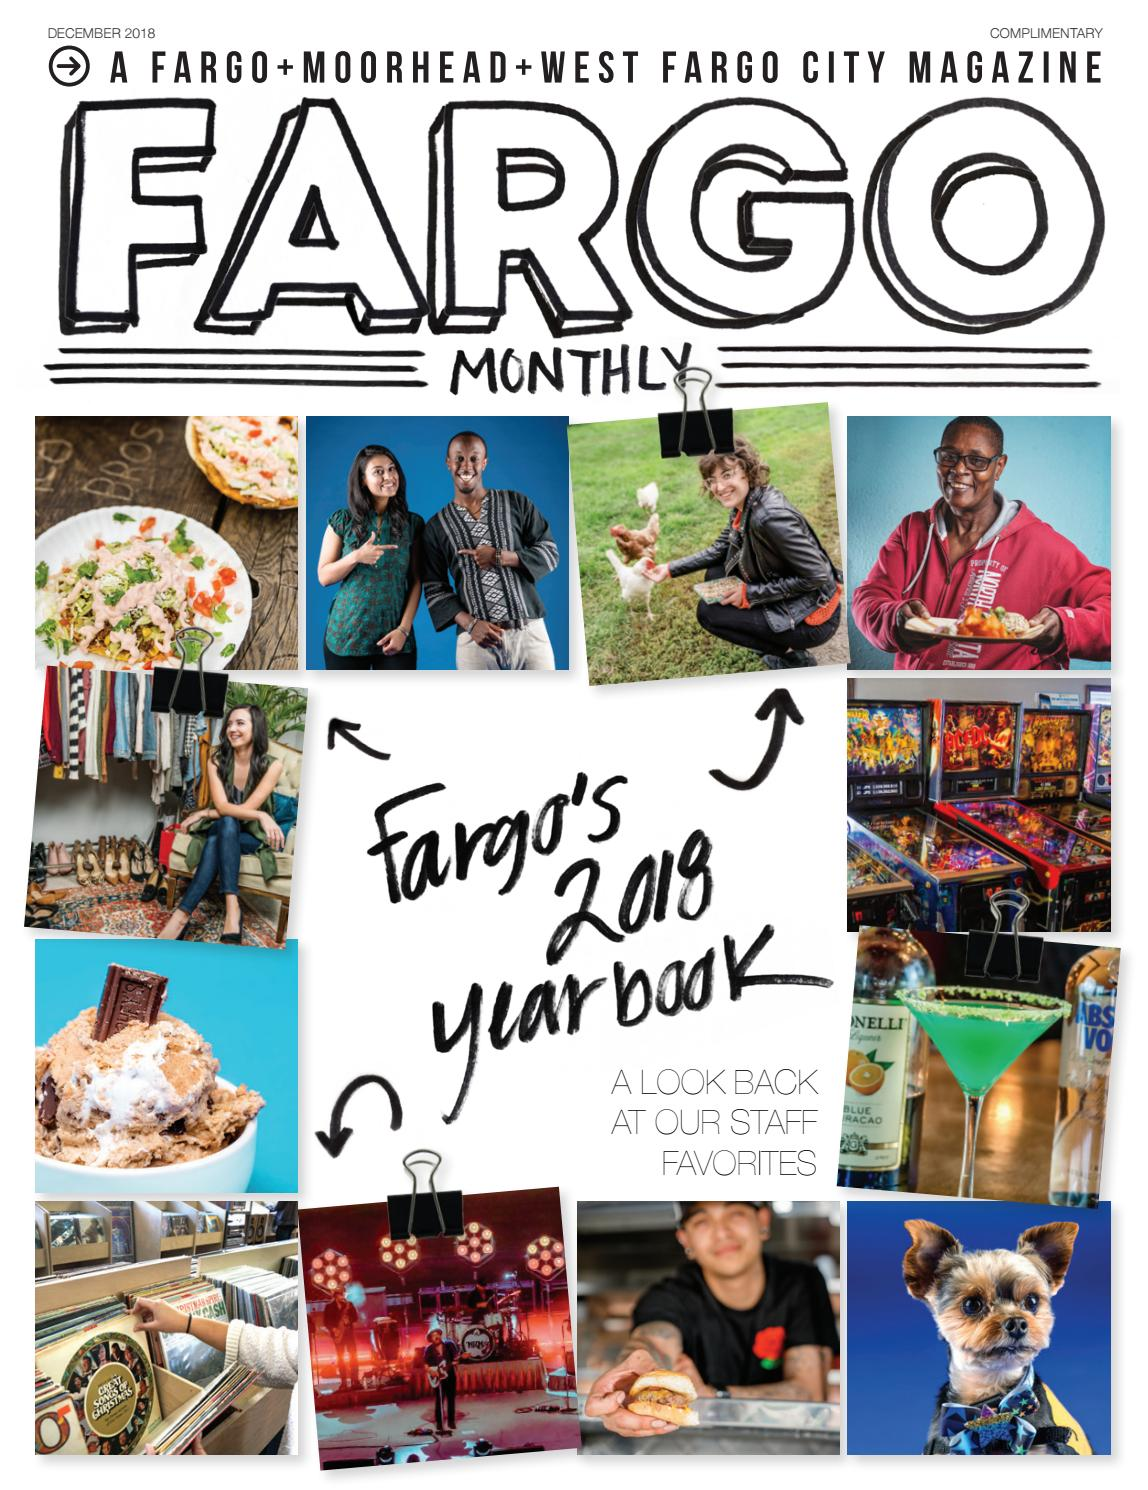 Cash Pool Partner Targo Bank Fargo Monthly December 2018